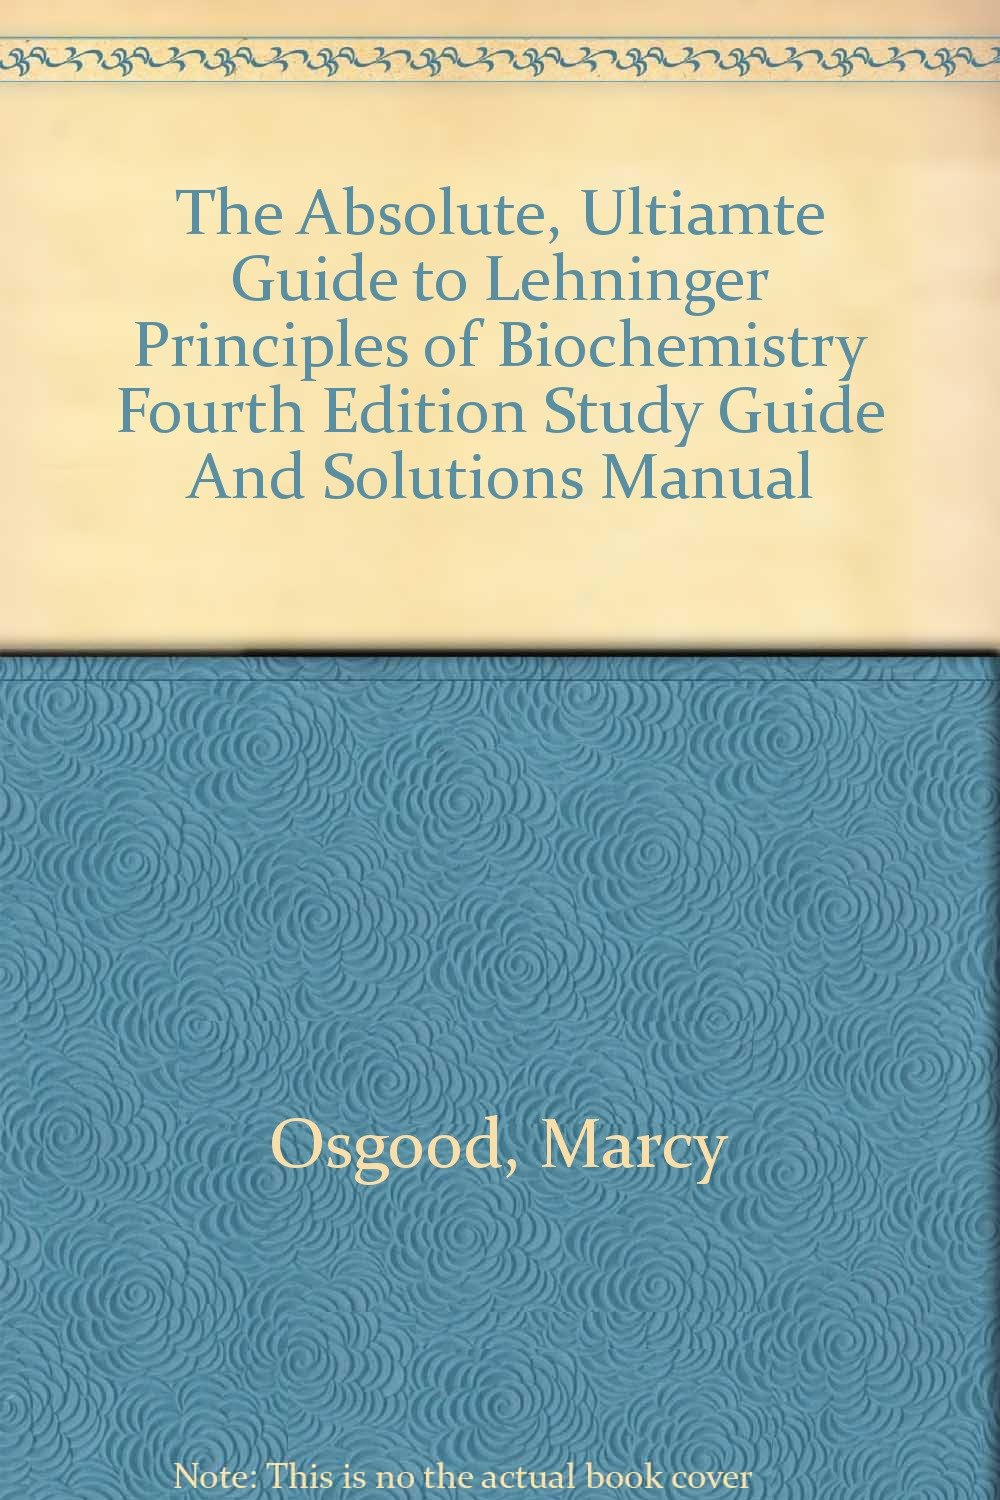 The Absolute, Ultiamte Guide to Lehninger Principles of Biochemistry Fourth  Edition Study Guide And Solutions Manual: Marcy Osgood: Amazon.com: Books